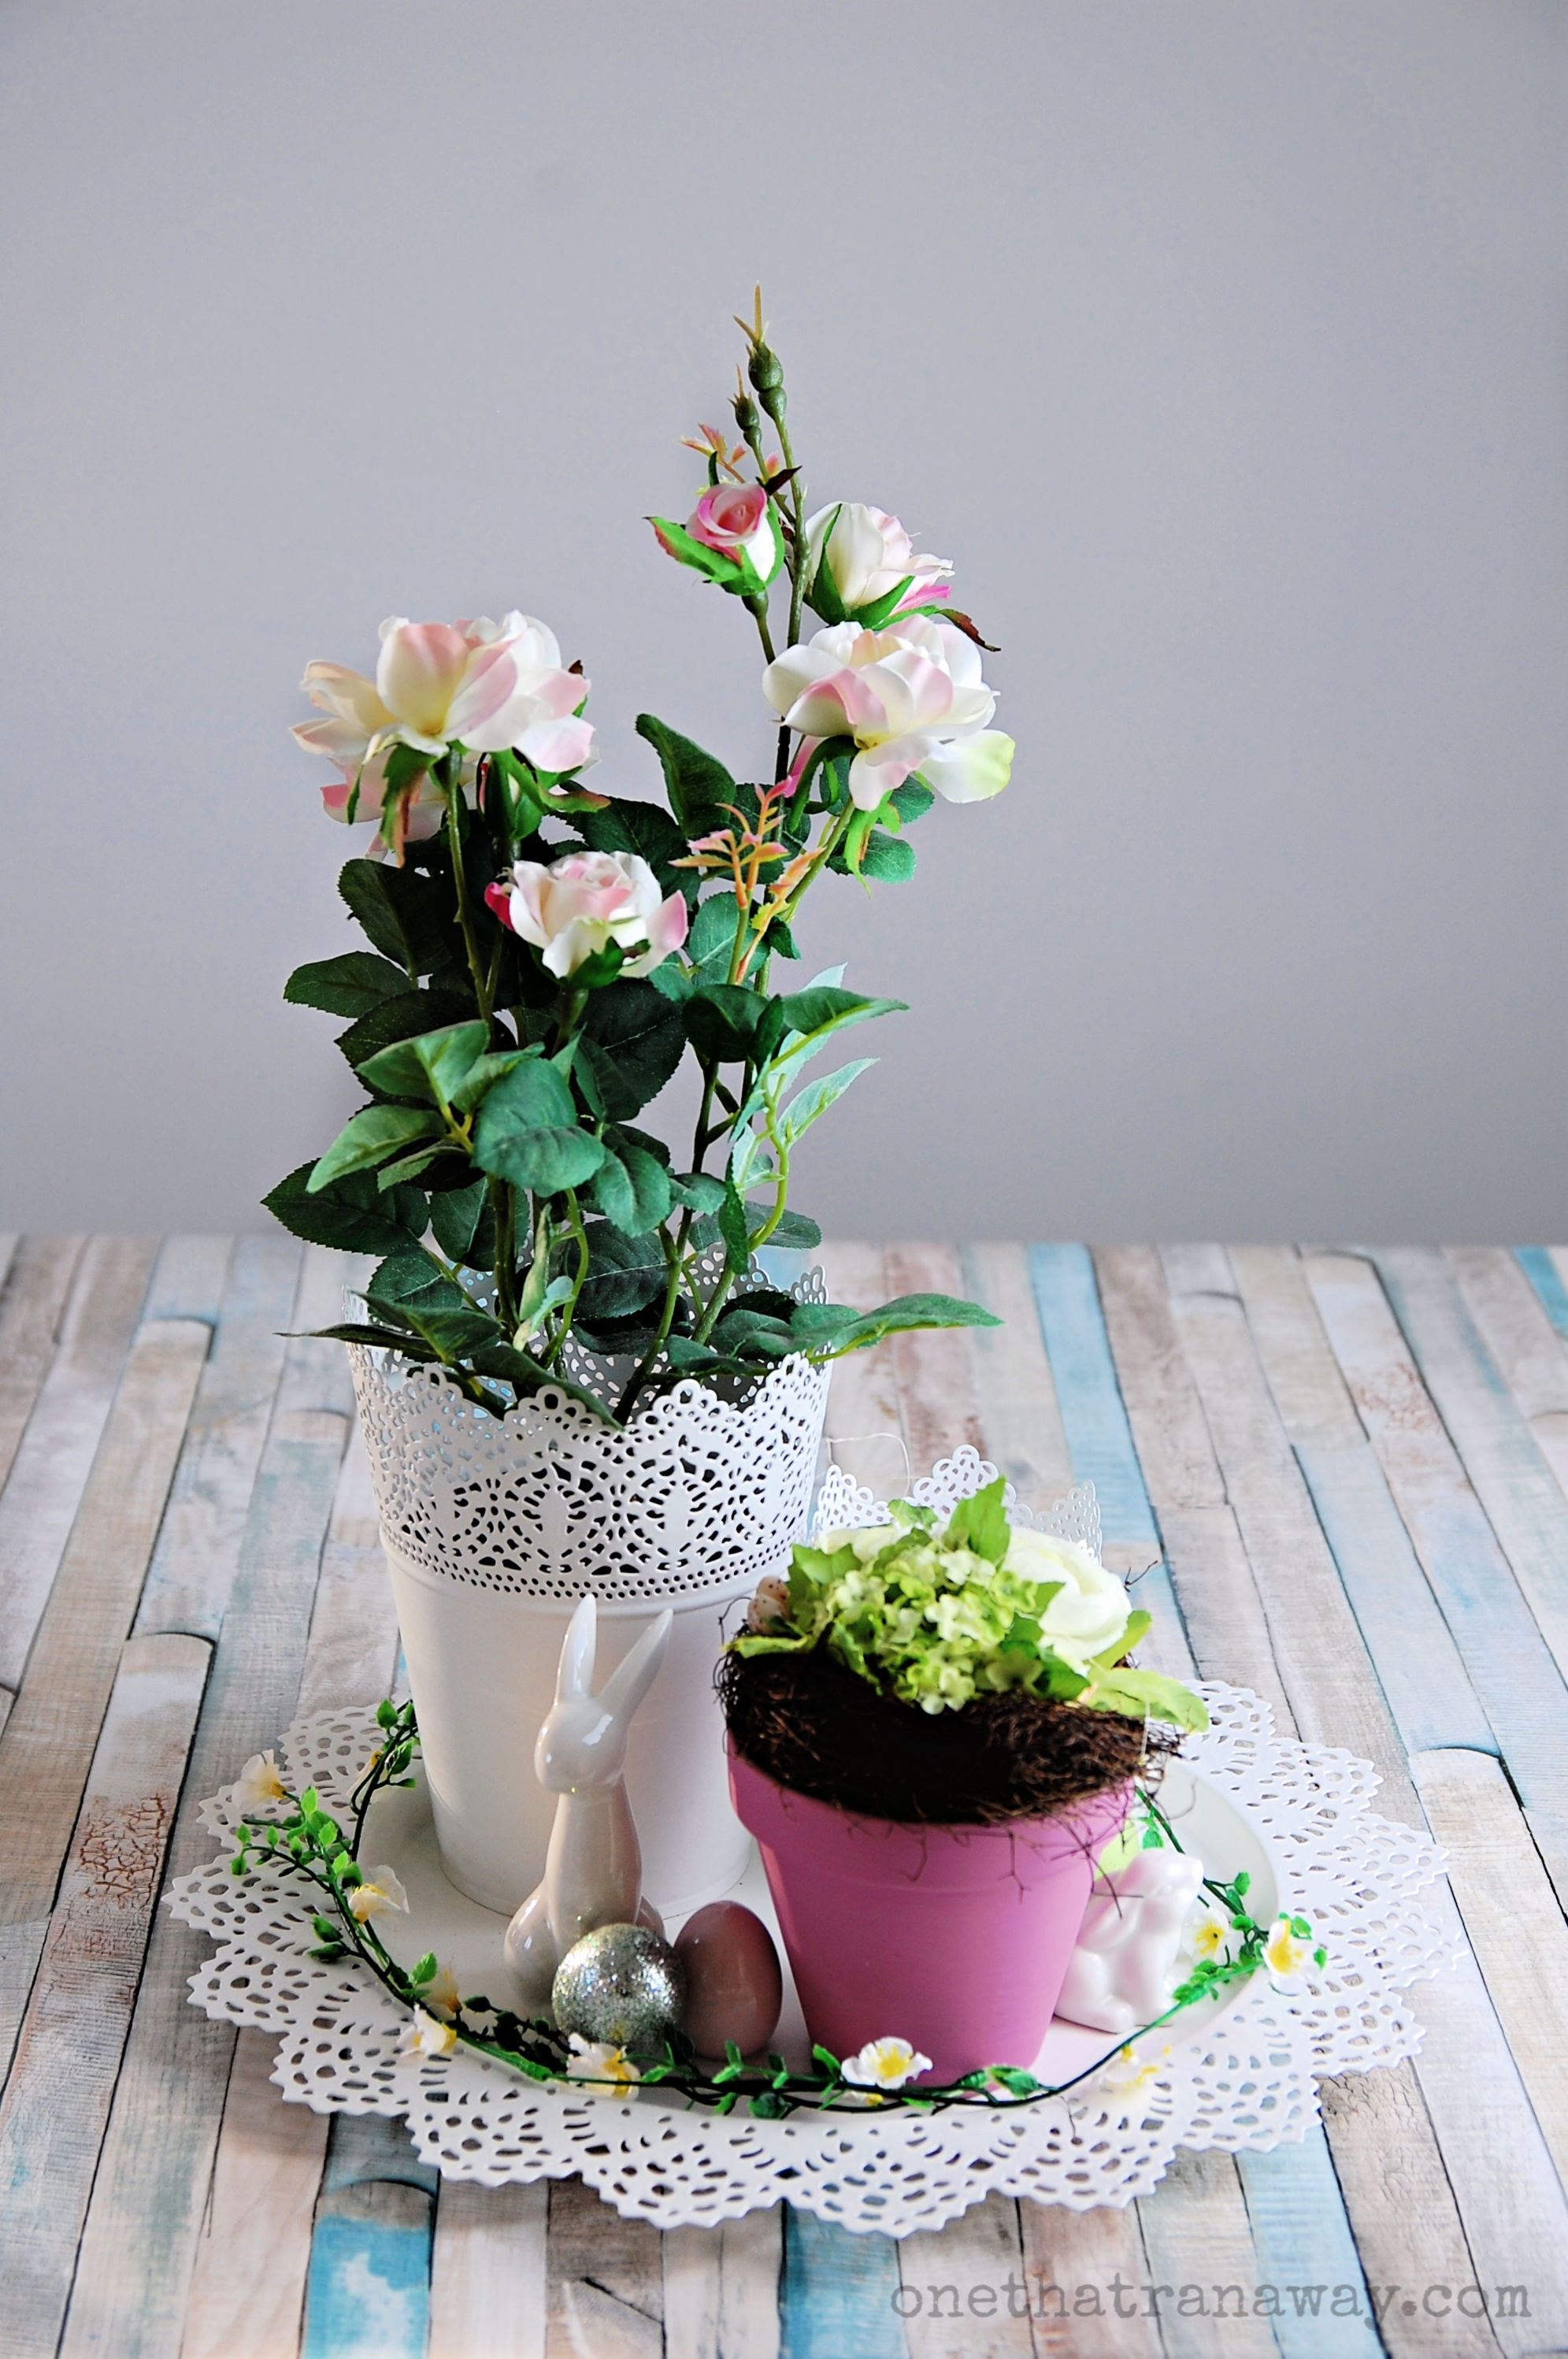 easter decorations with a flower bouquet, a white ceramic bunny and rose flowers